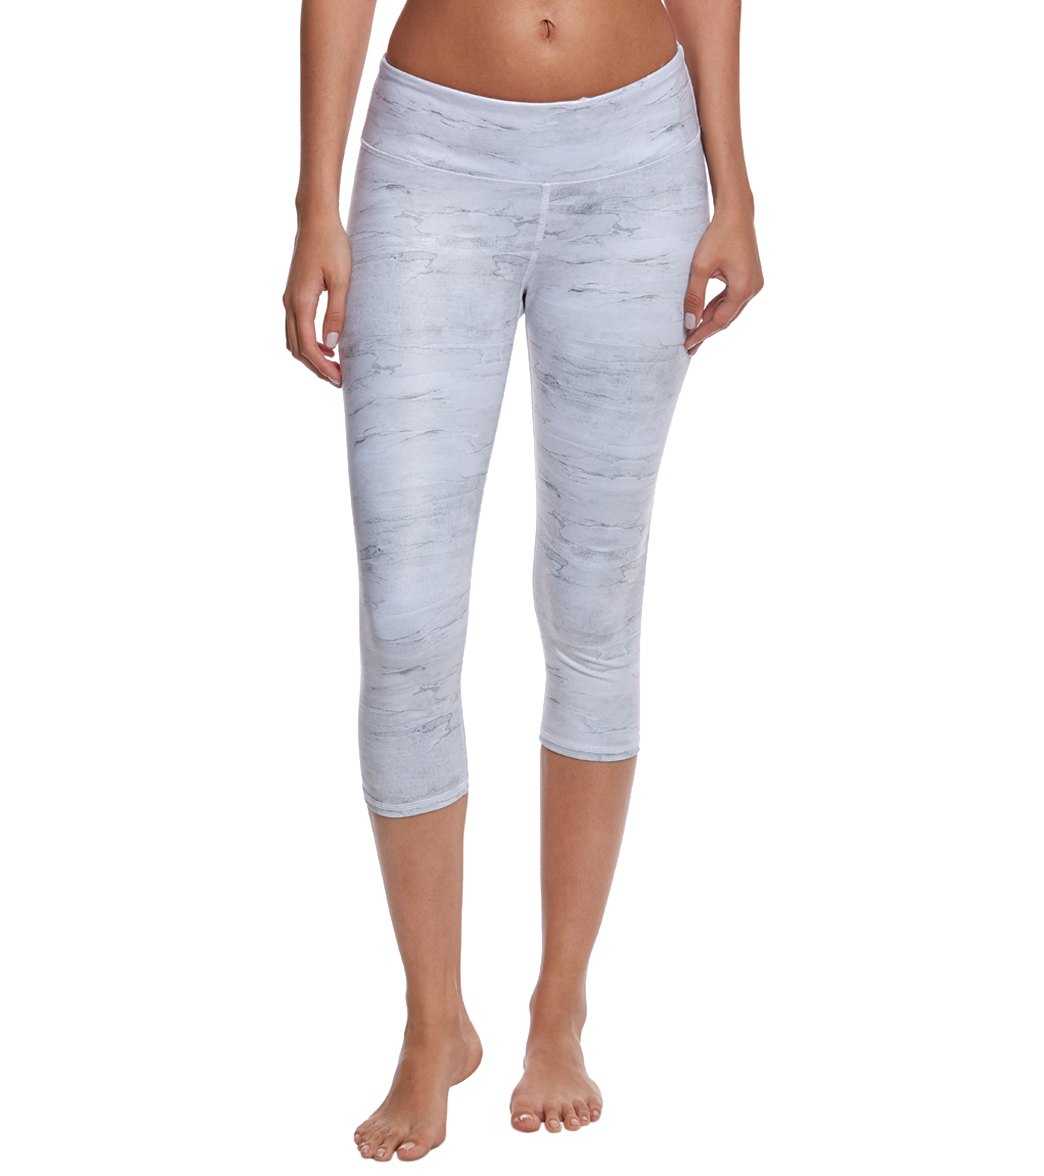 0d7c3828393a4 Alo Yoga Printed Airbrush Yoga Capris at YogaOutlet.com - Free Shipping